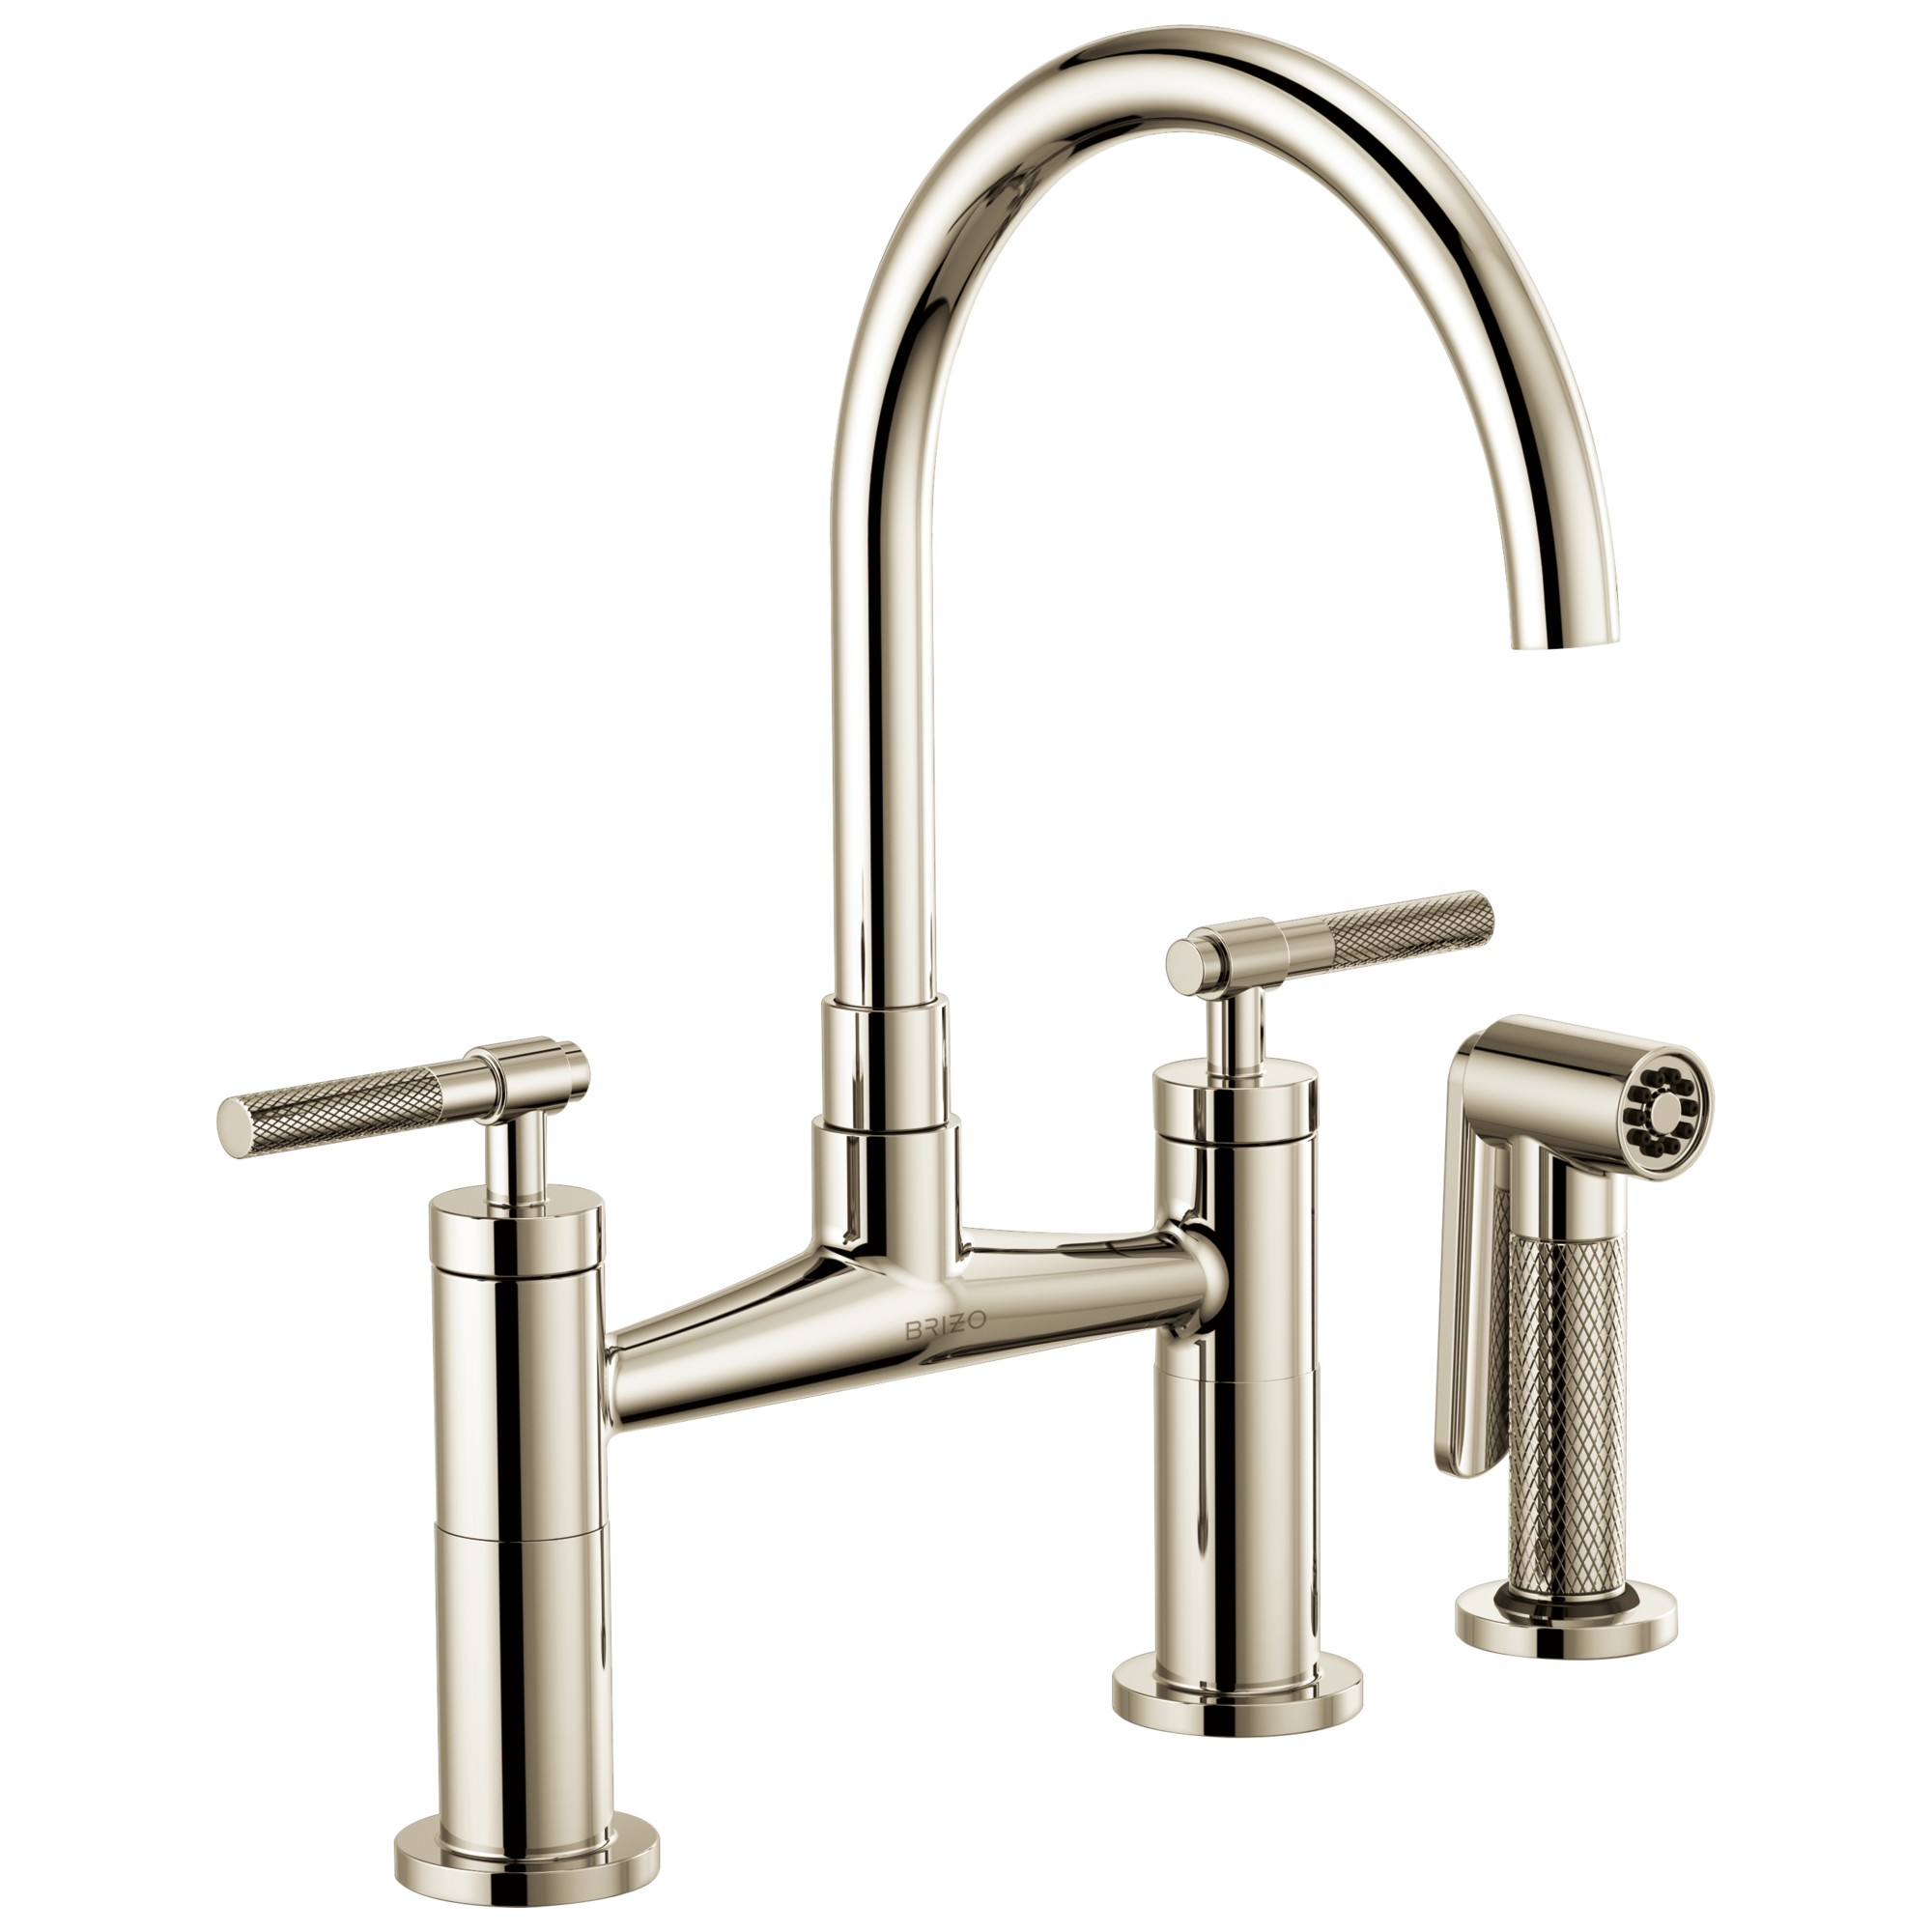 Brizo 62543LF-PN Litze Bridge Faucet with Arc Spout and Knurled Handle - Polished Nickel